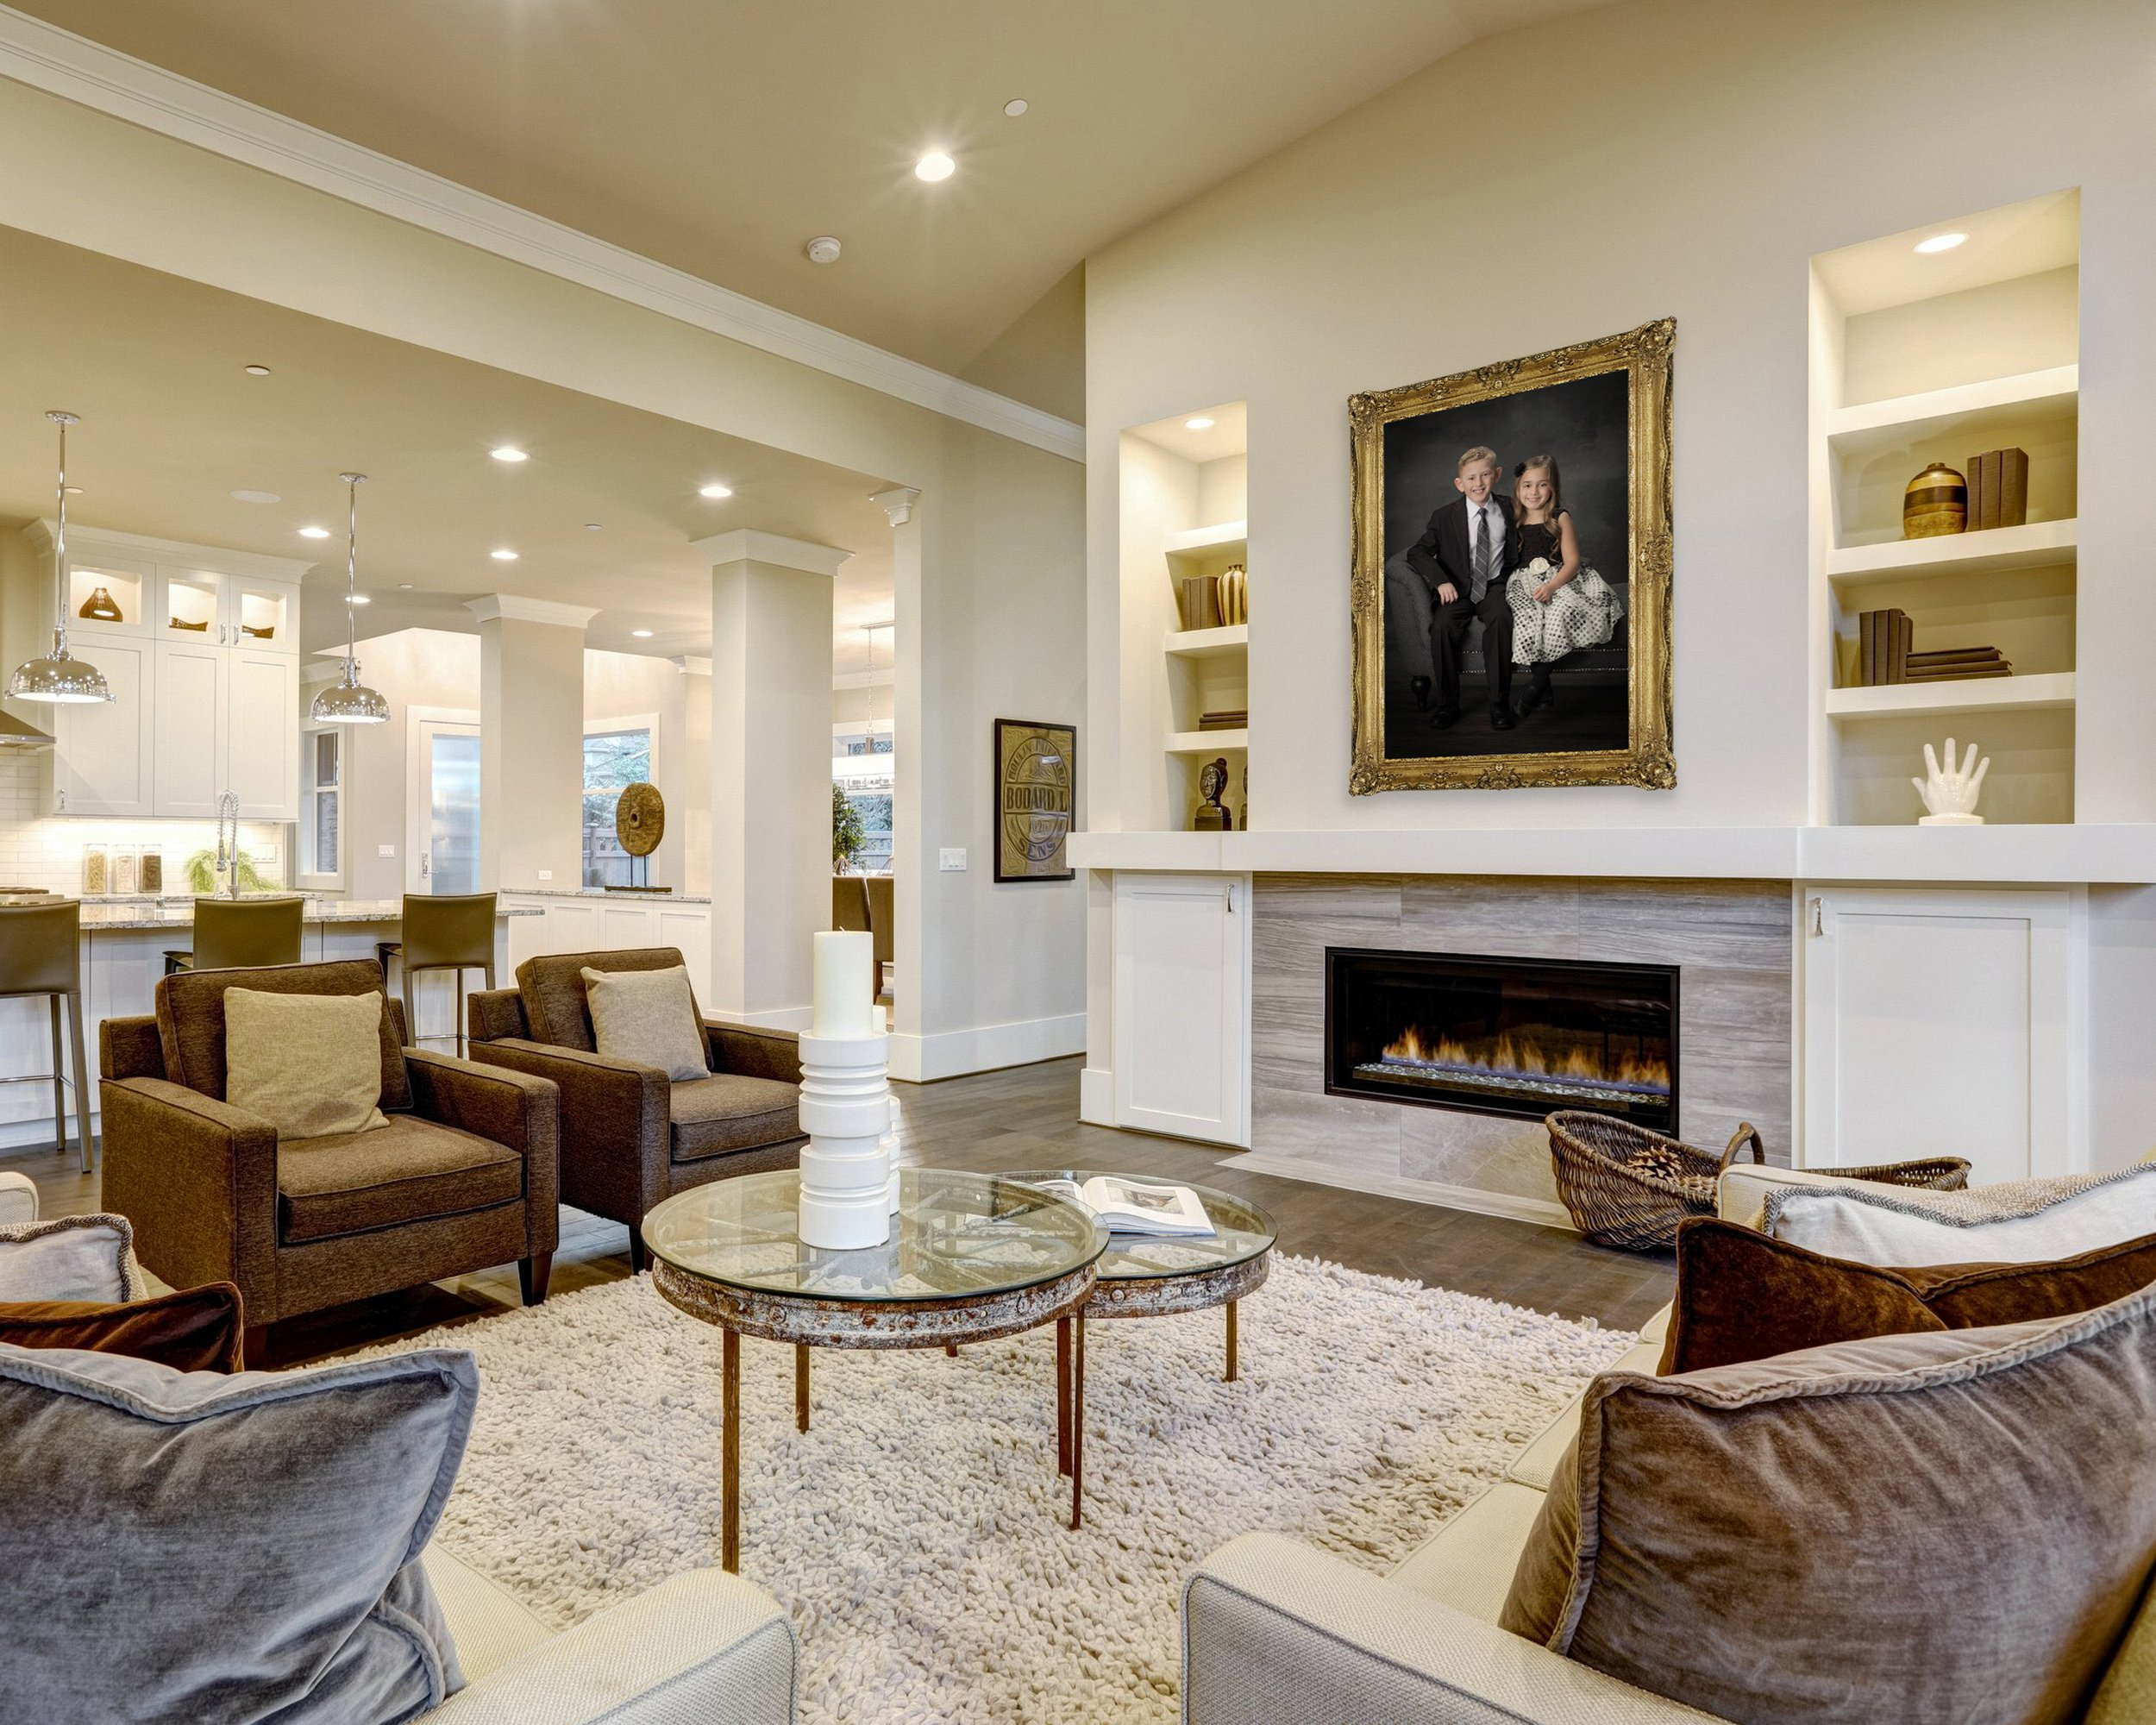 Chic living room design in natural colors and open plan. Furnished with glass top accent tables and beige sofas topped with brown pillows facing modern fireplace with built-in shelves. Northwest, USA